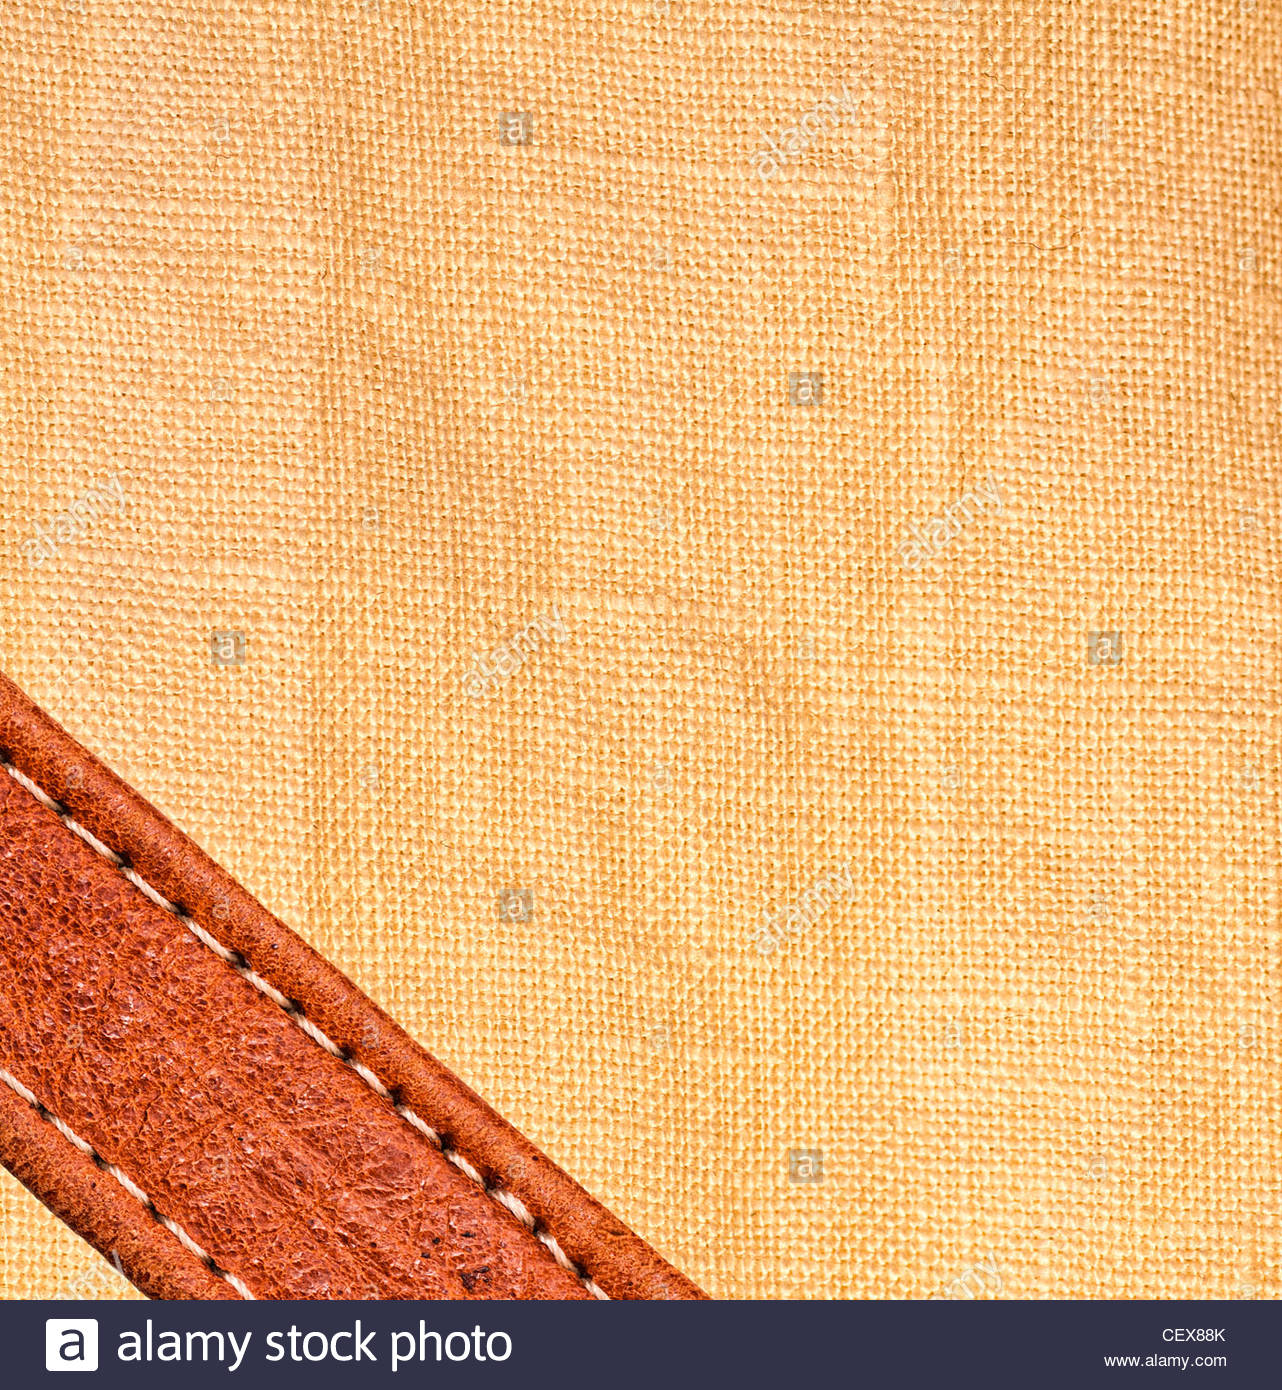 Image of leather and textile background Stock Photo 43603187   Alamy 1282x1390